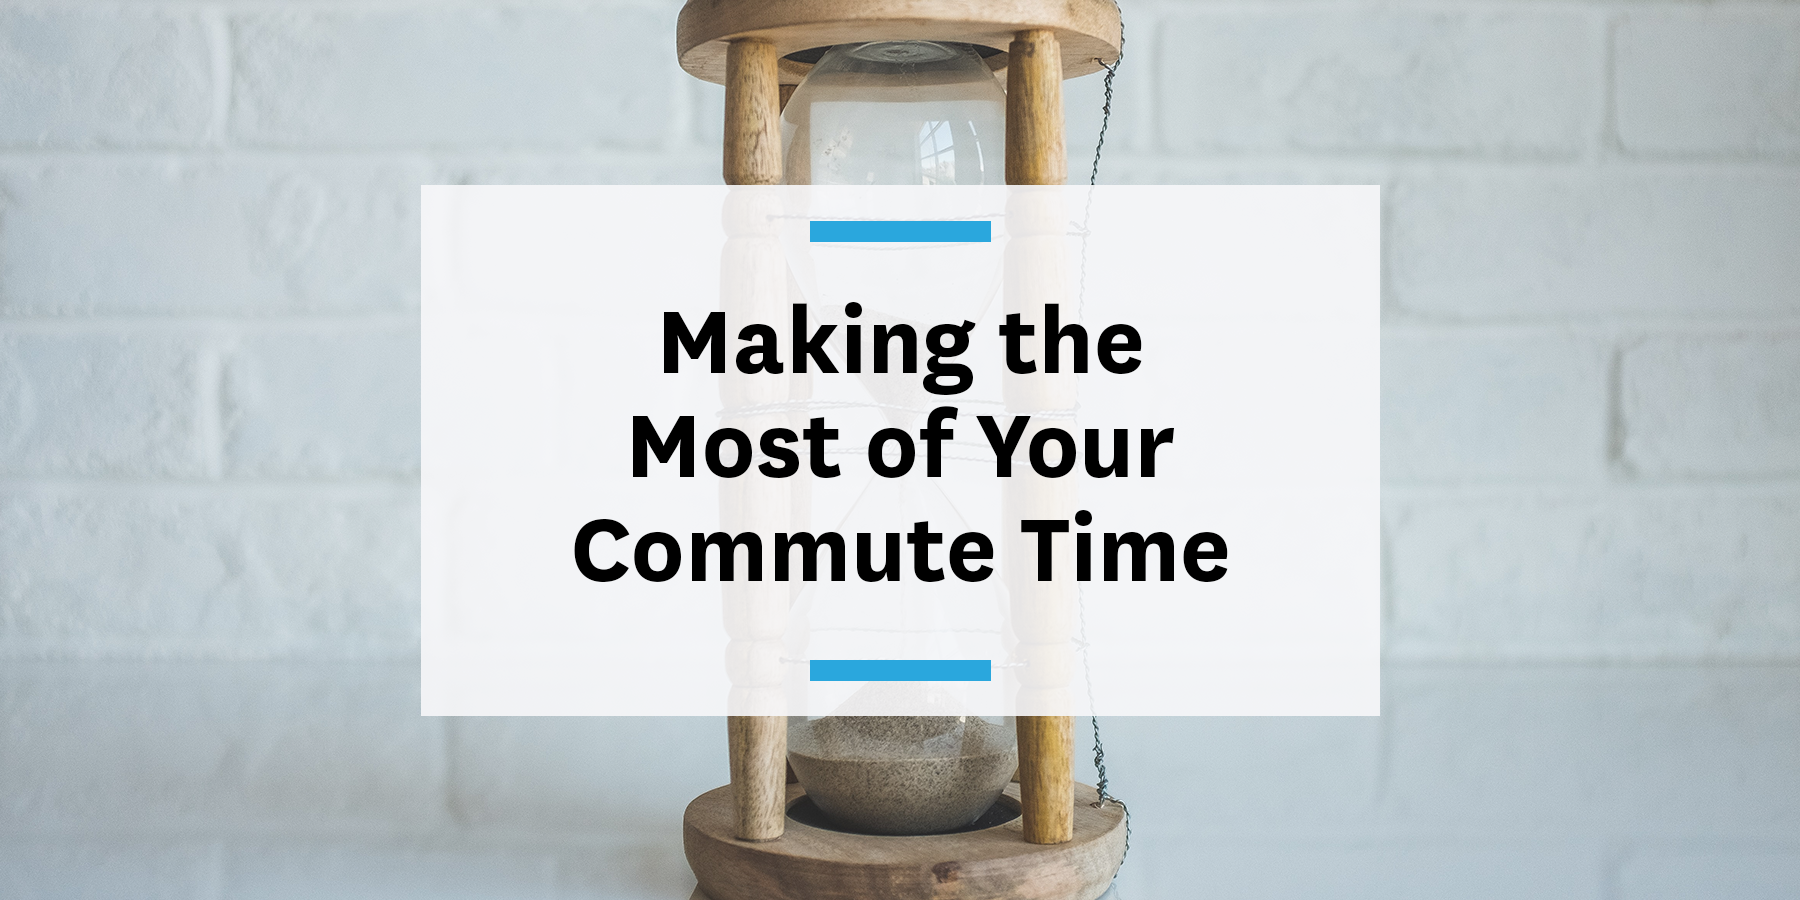 make the most of commute time